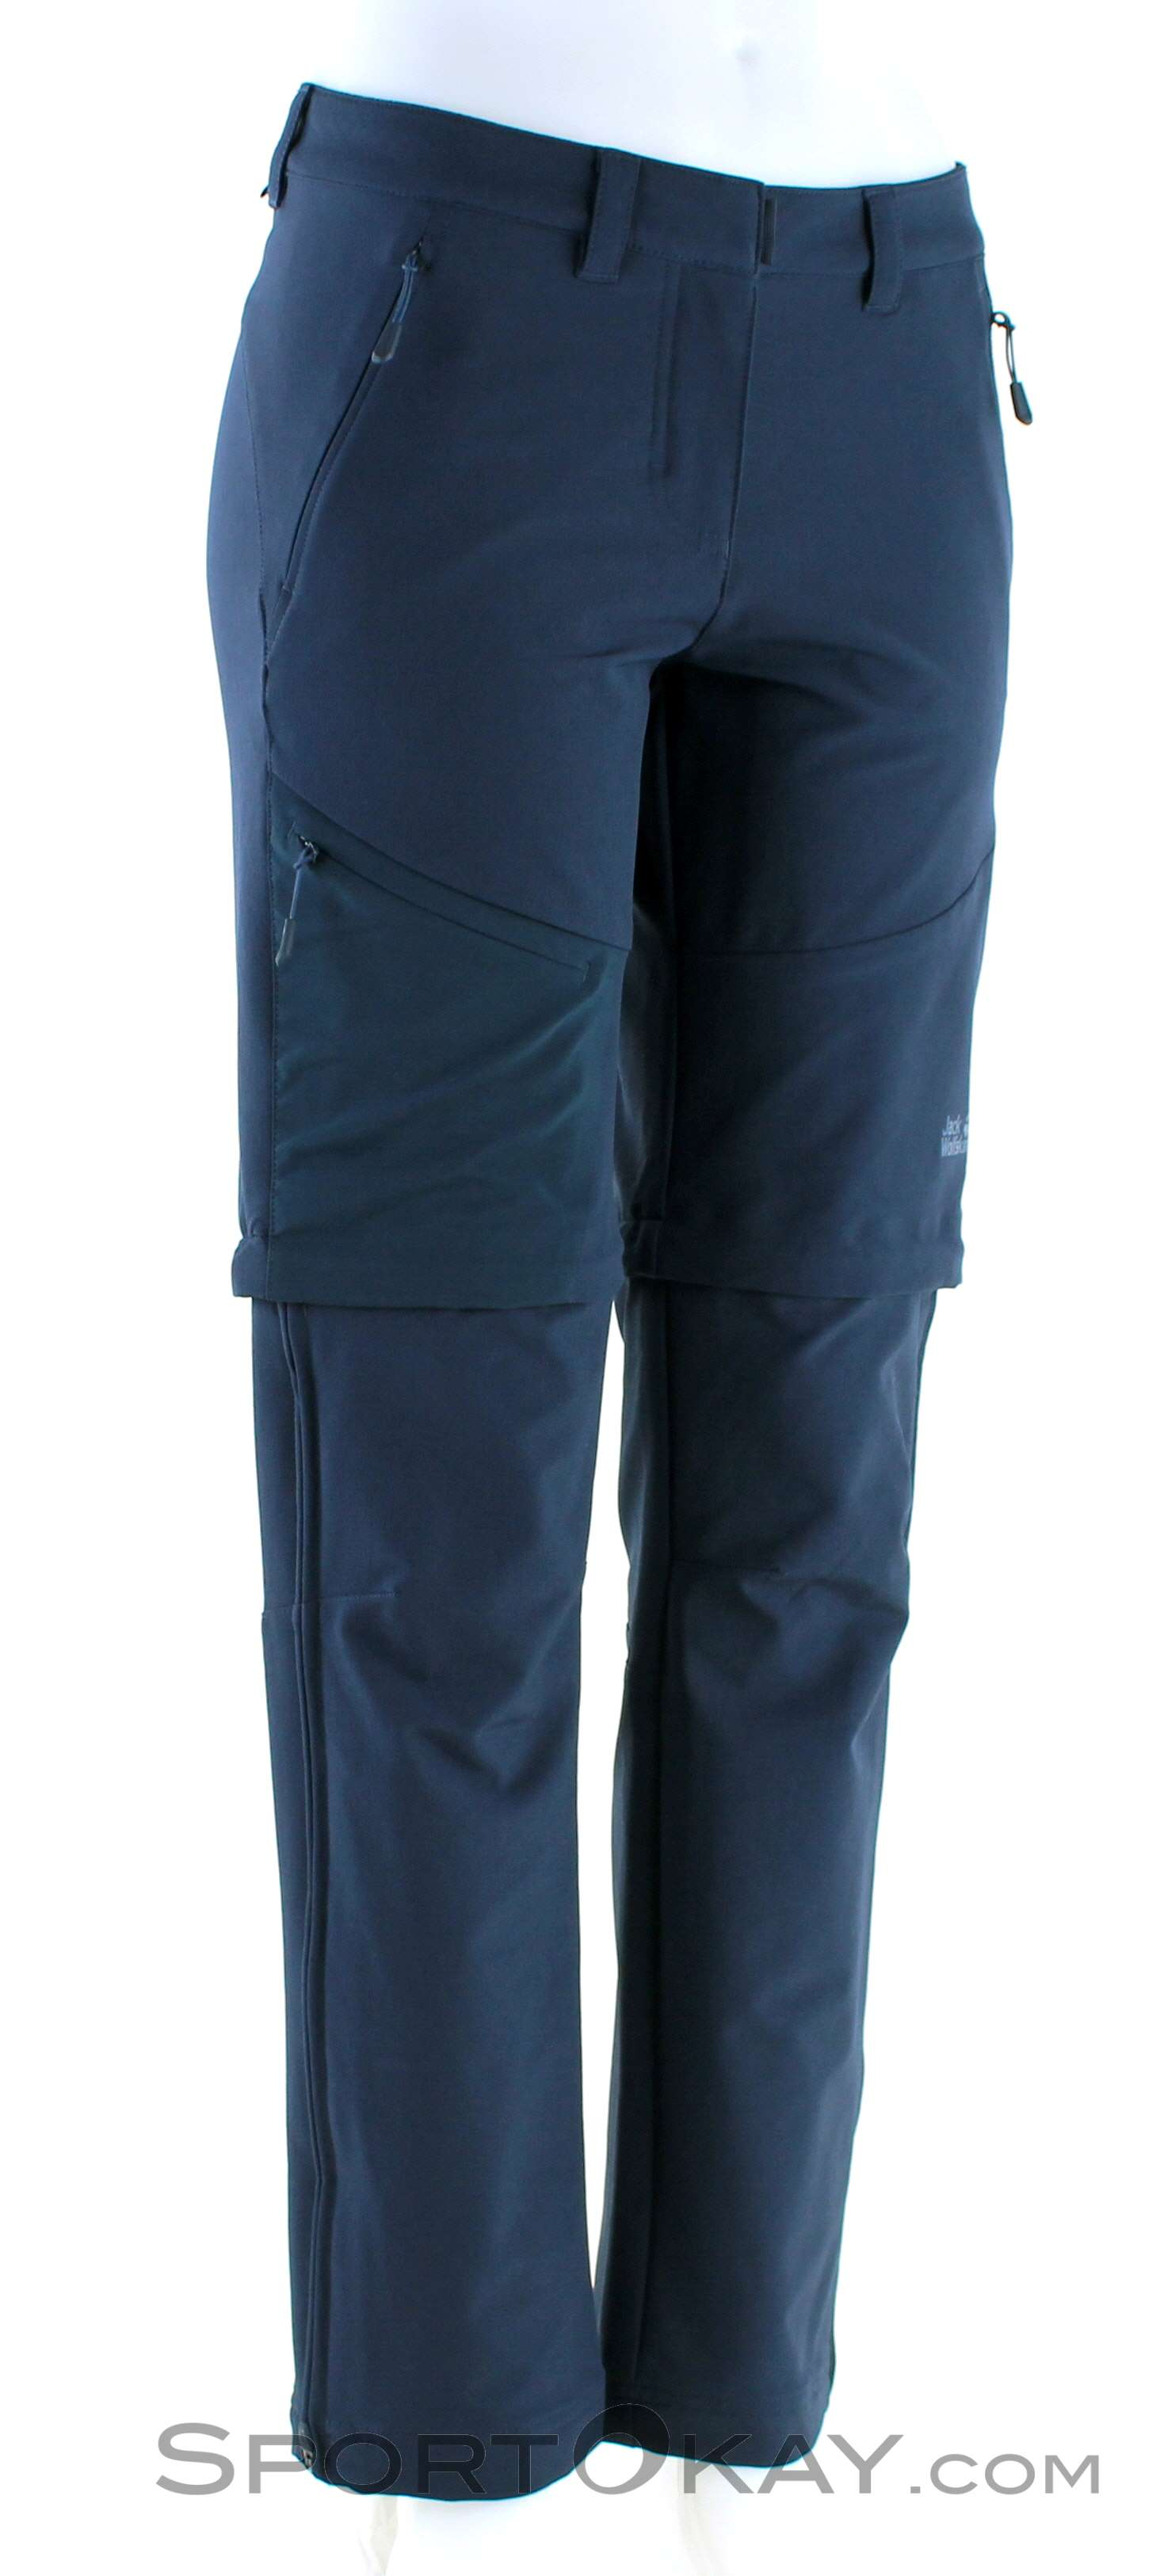 Jack Wolfskin Womens Activate Zip Off Pants